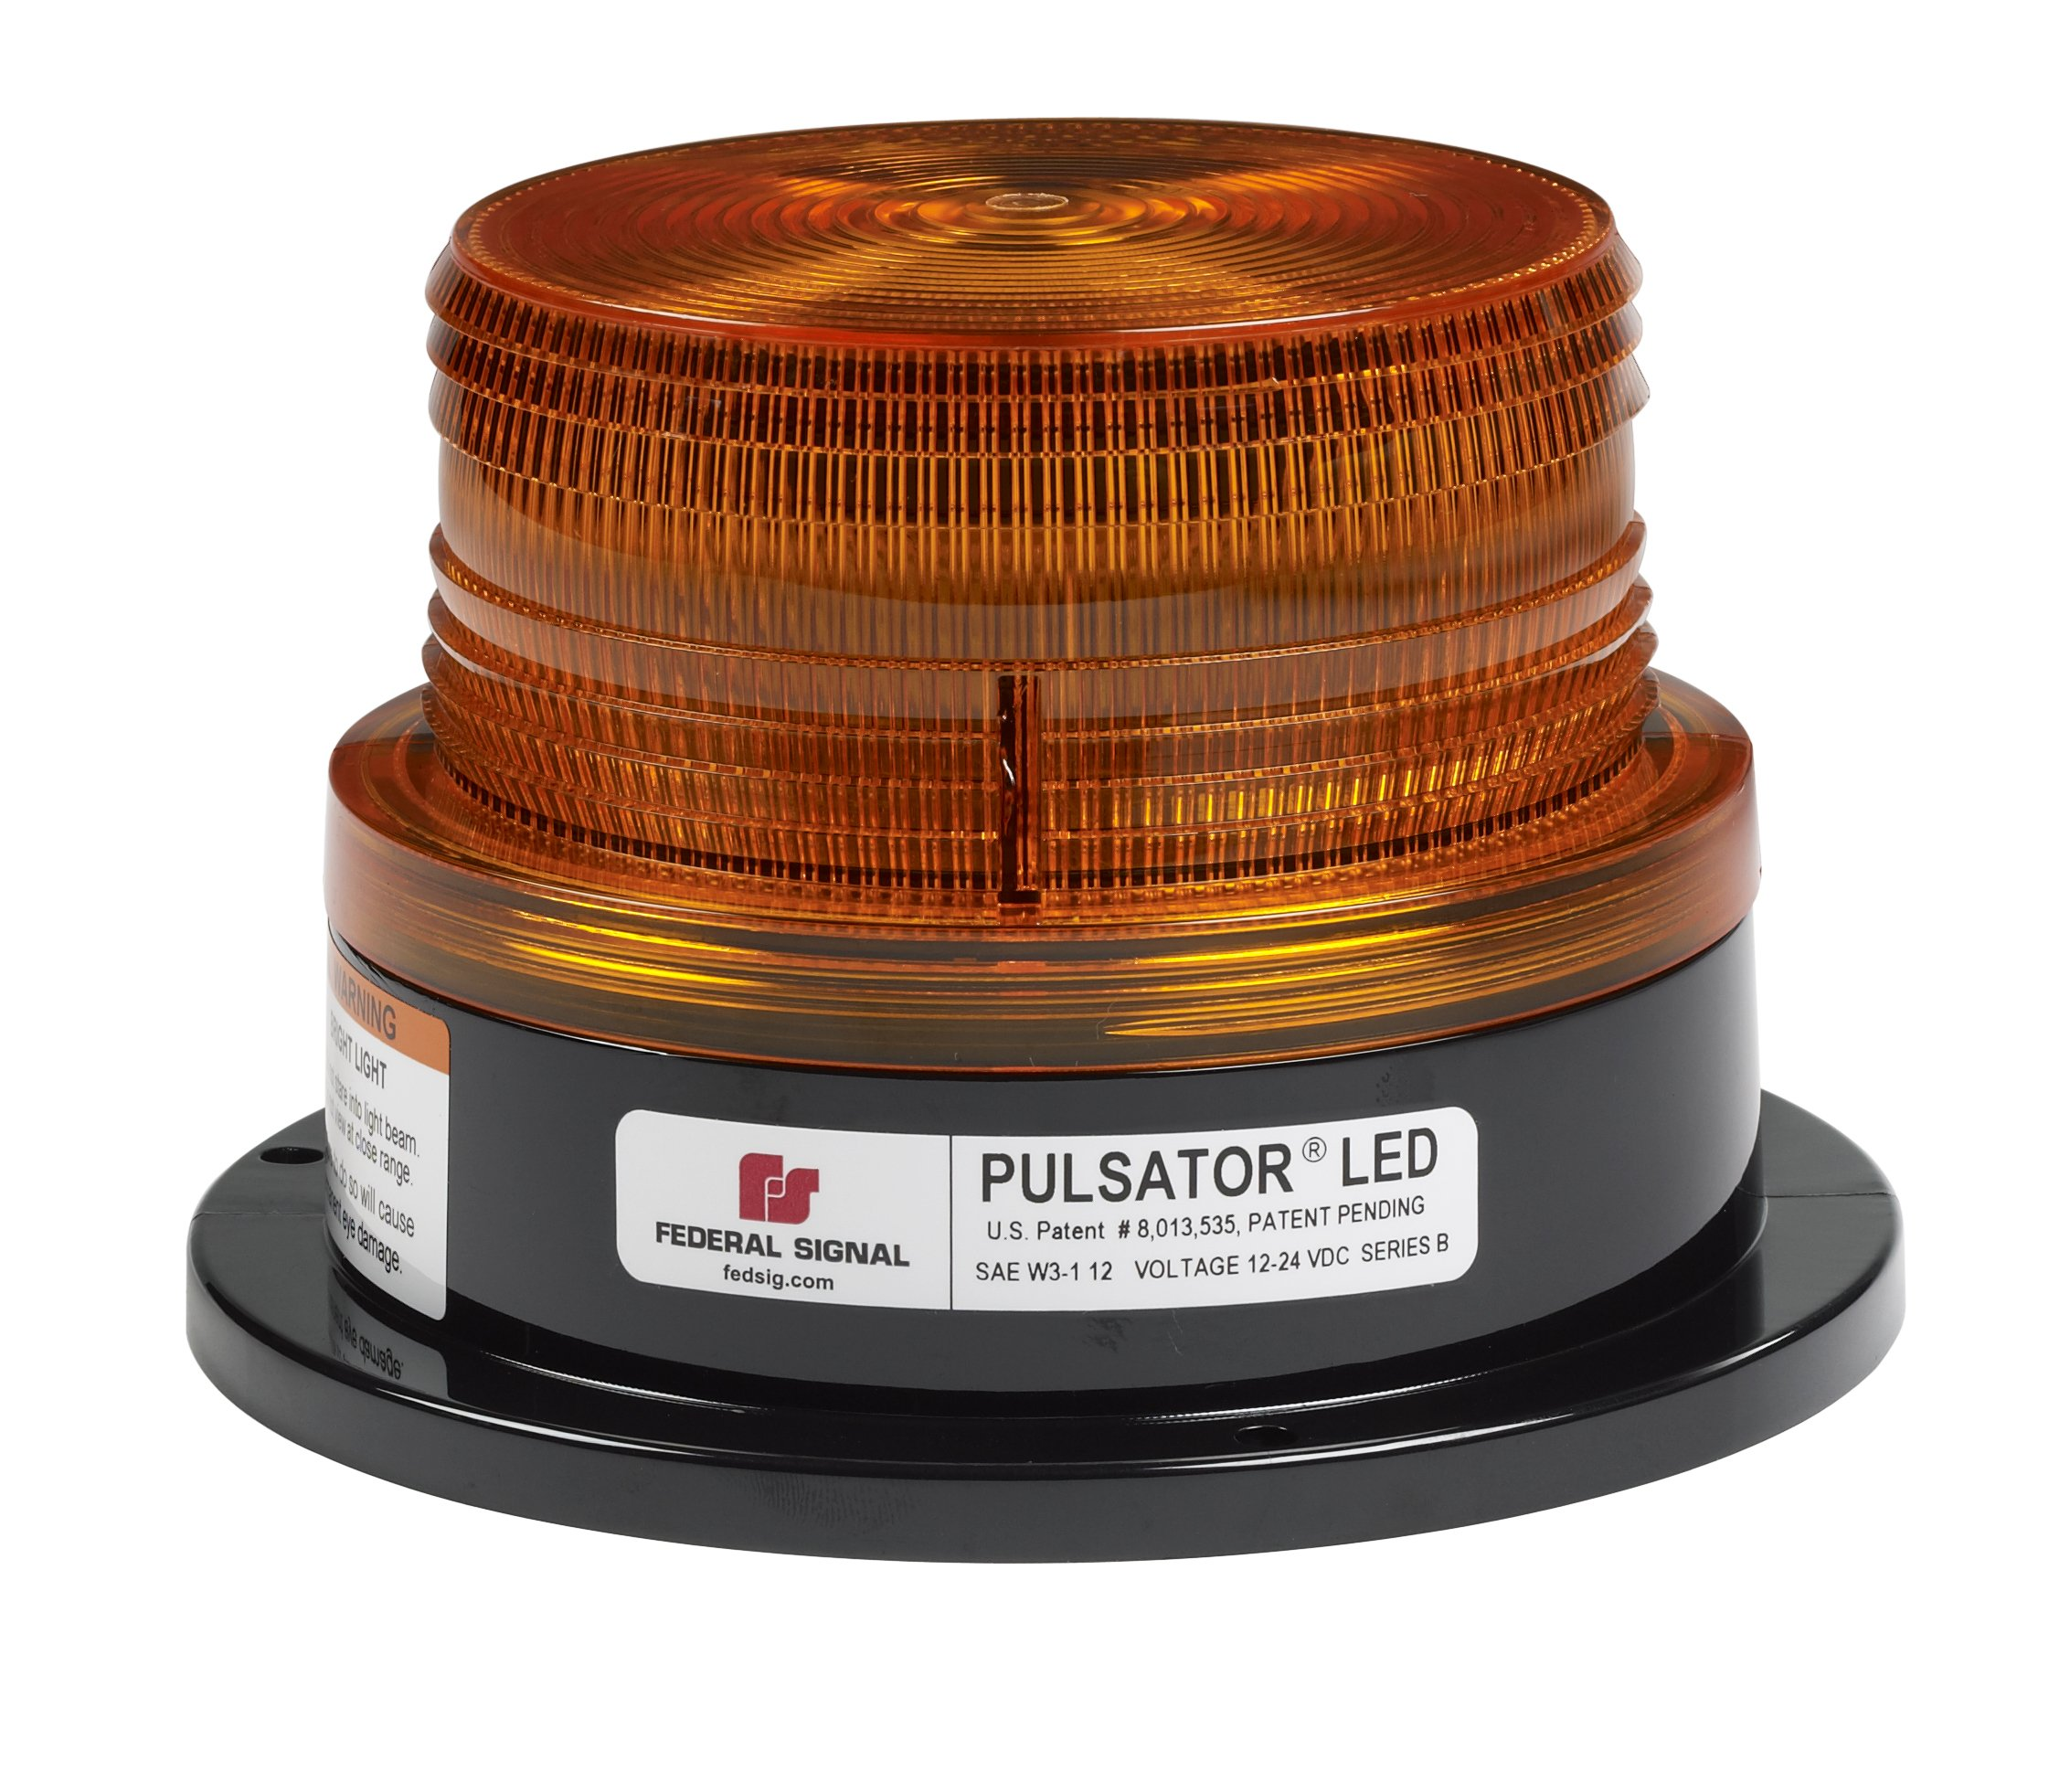 Federal Signal 212674-02SB Class 2 Pulsator 451 LED Beacon, Suction-Cup Magnetic Mount with Cigarette Plug, Short Dome, Amber